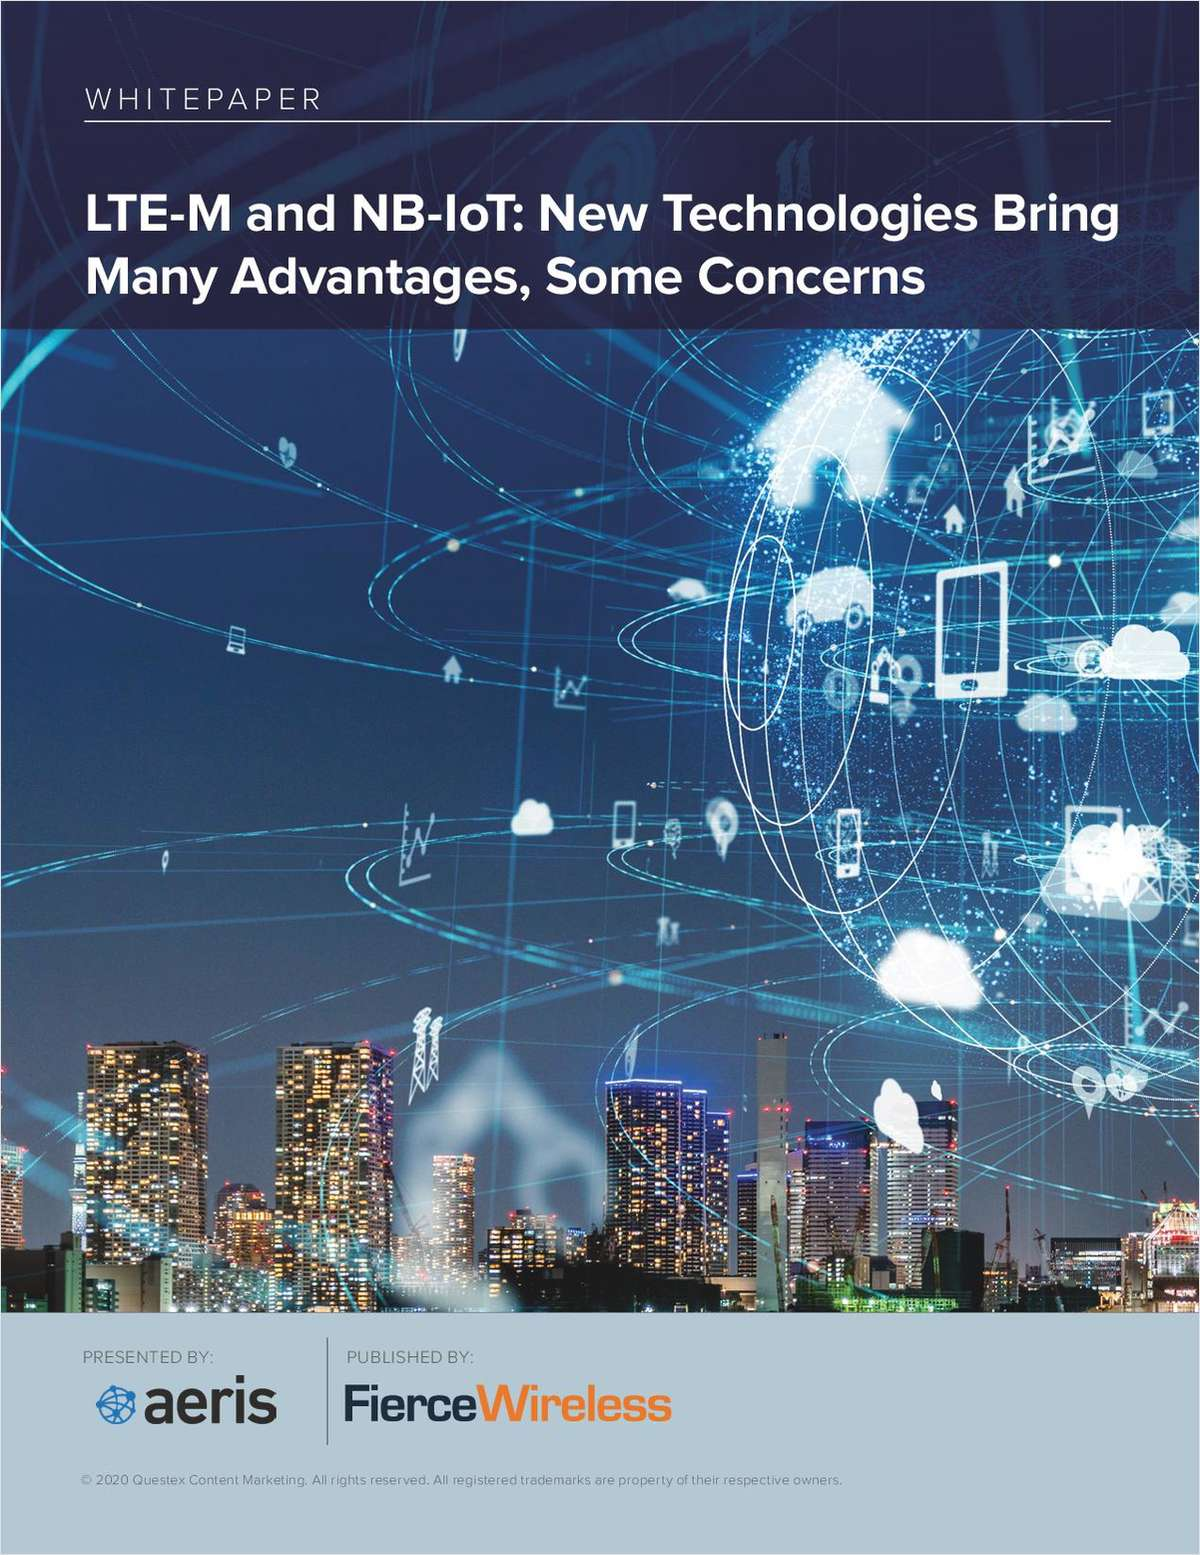 LTE-M and NB-IoT: New Technologies Bring Many Advantages, Some Concerns